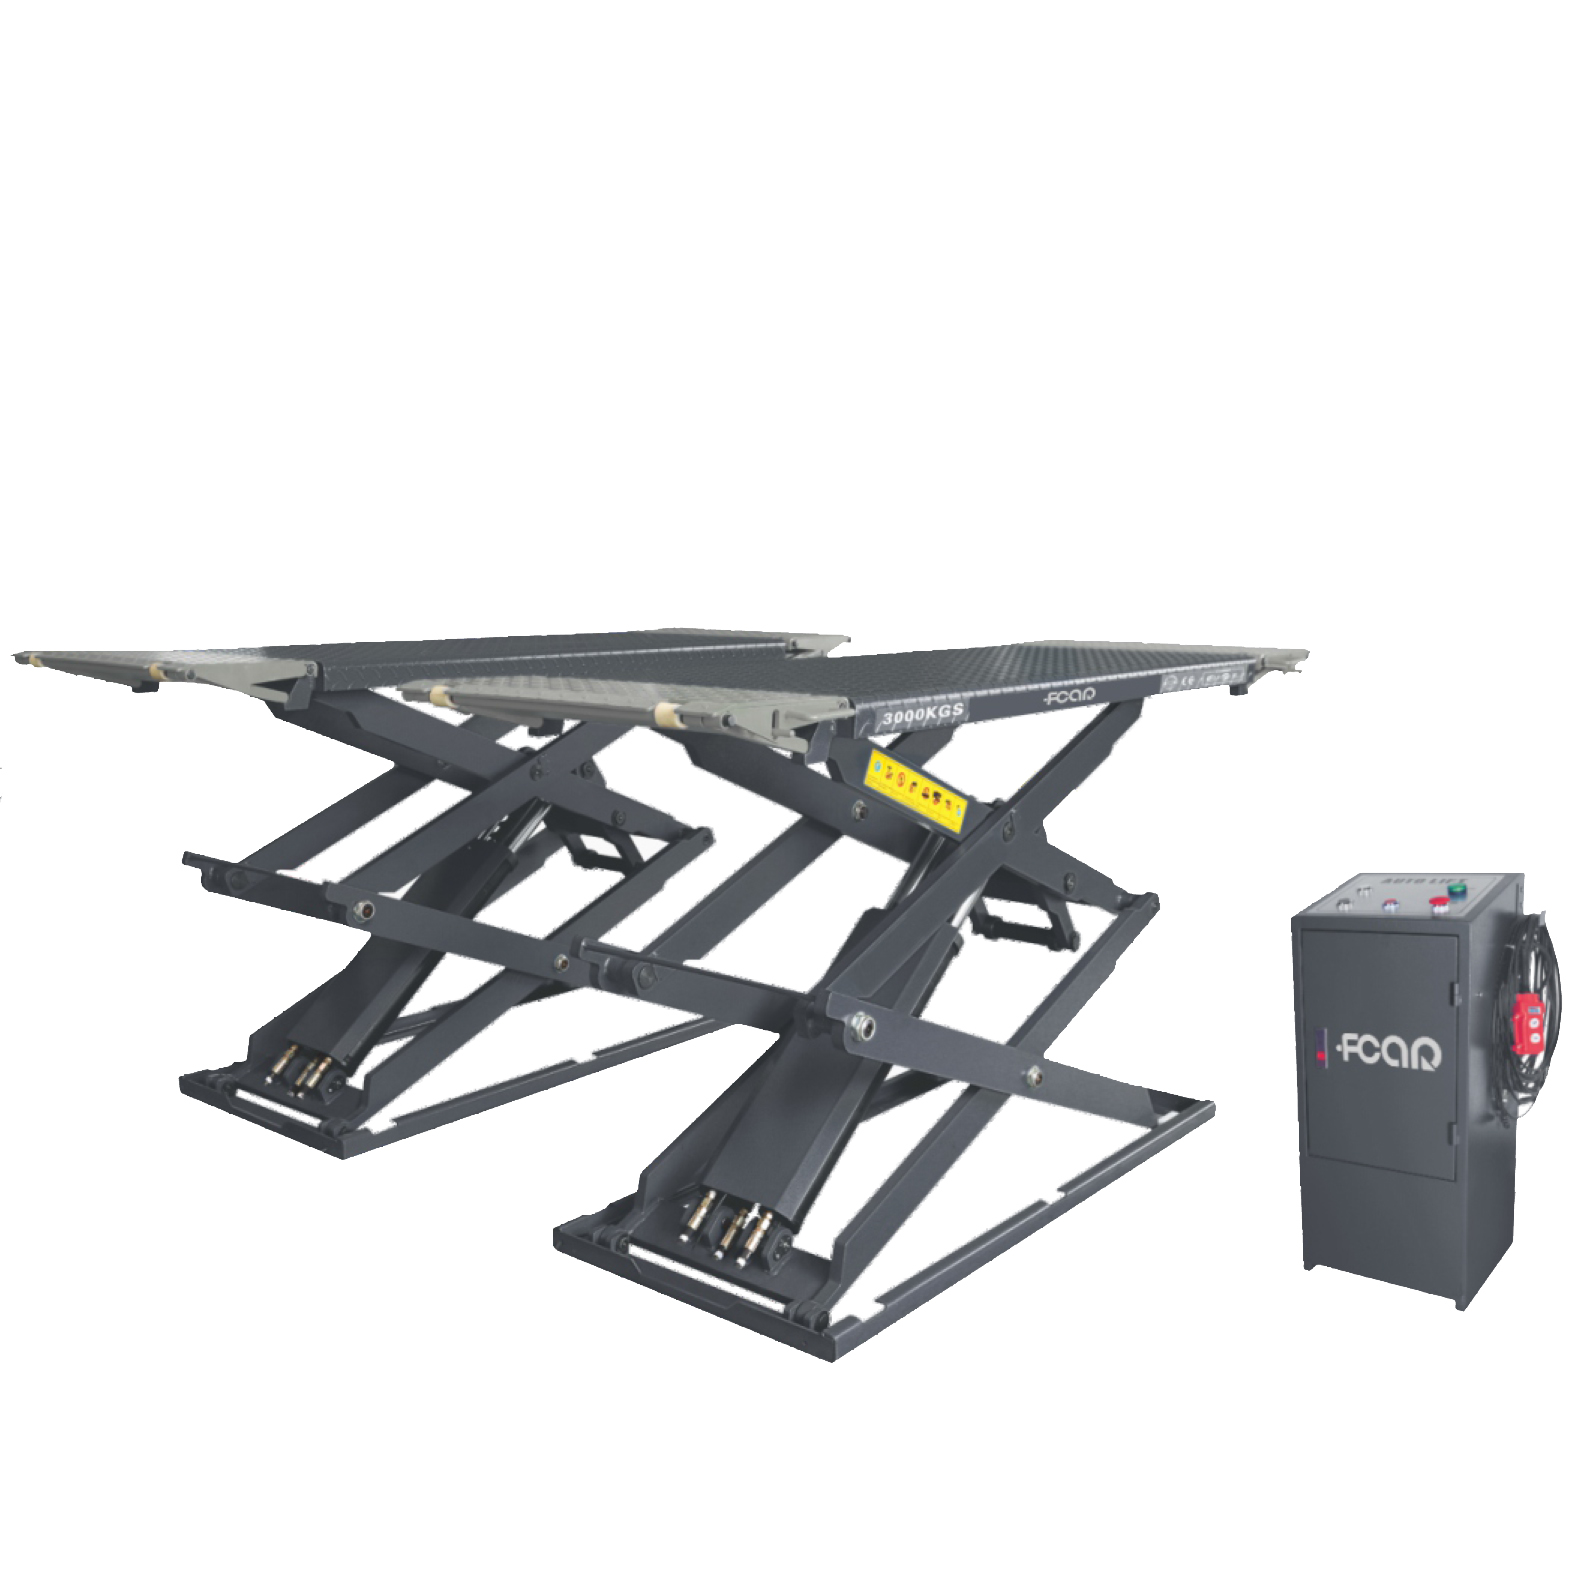 FCAR FC-35CBS 3.5 Tons Full Rise On-ground Scissor Lift Factory Direct Price 1850mm Lifting Height garage equipment and tools